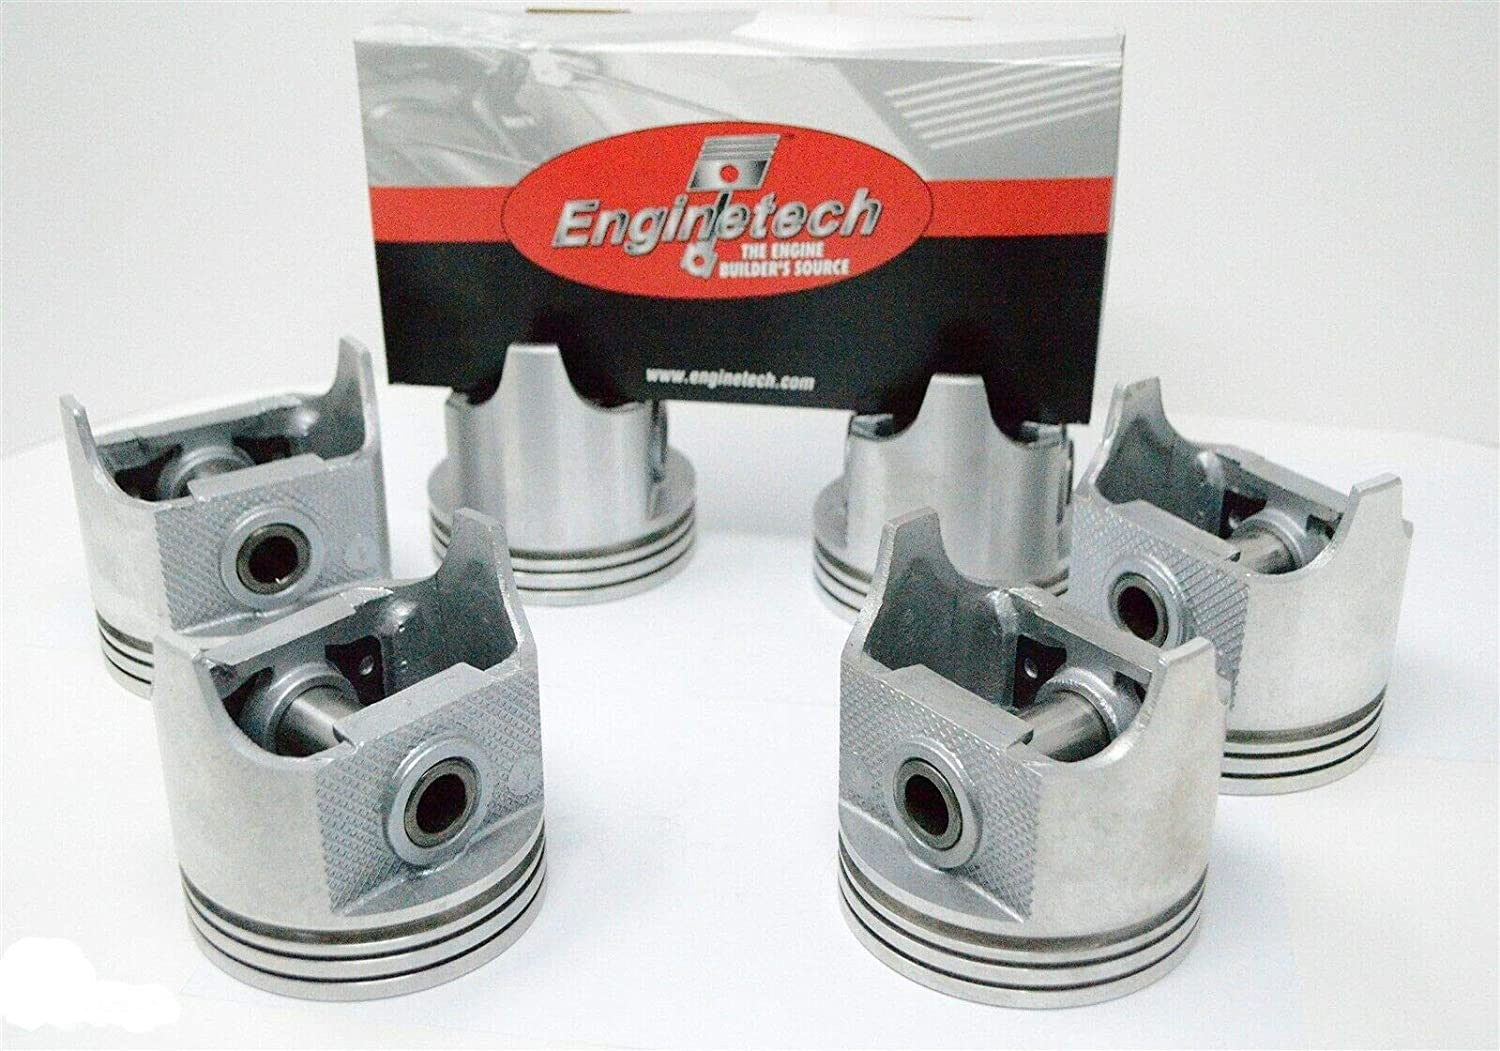 Enginetech 6 Super sale Pcs of Dish TOP Max 41% OFF Compatible Rings wit Pistons STD